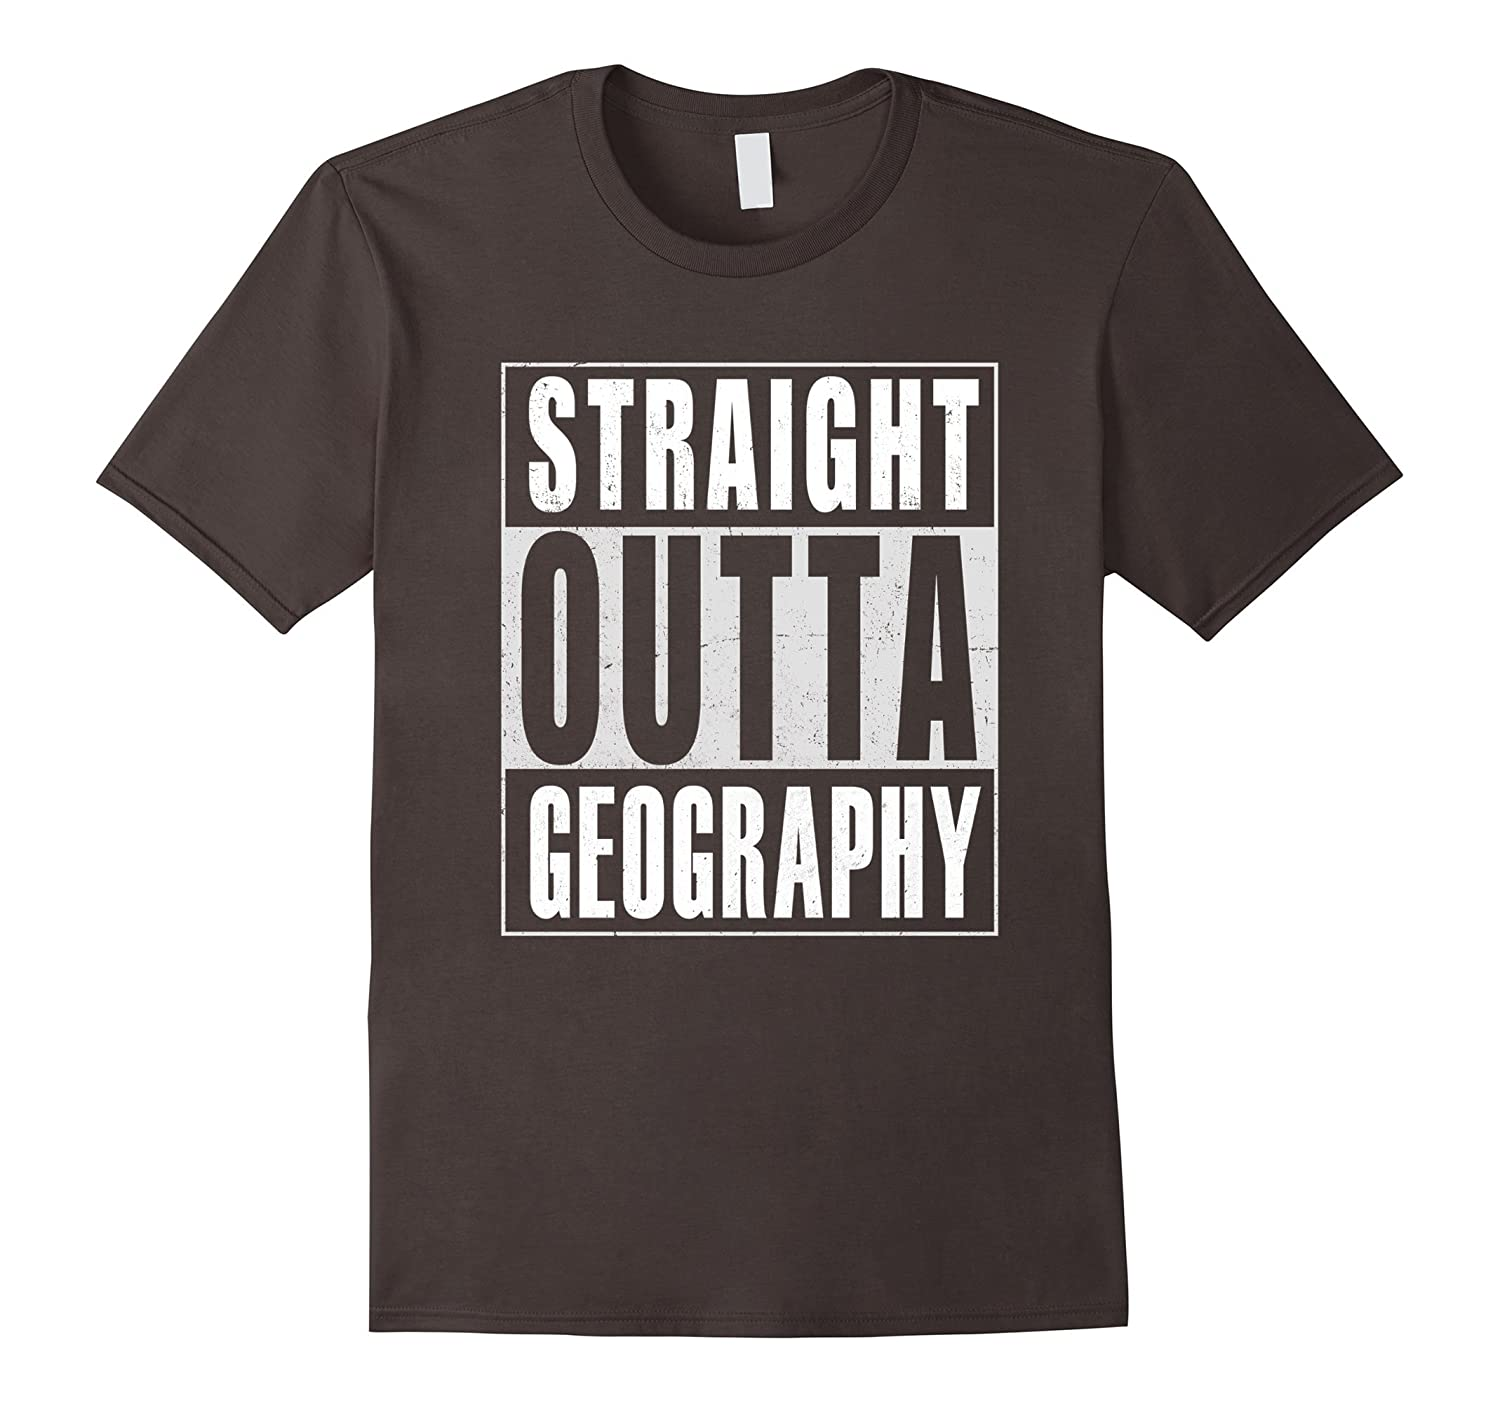 00b0ea1e Straight Outta Geography T-Shirt Funny-CD – Canditee